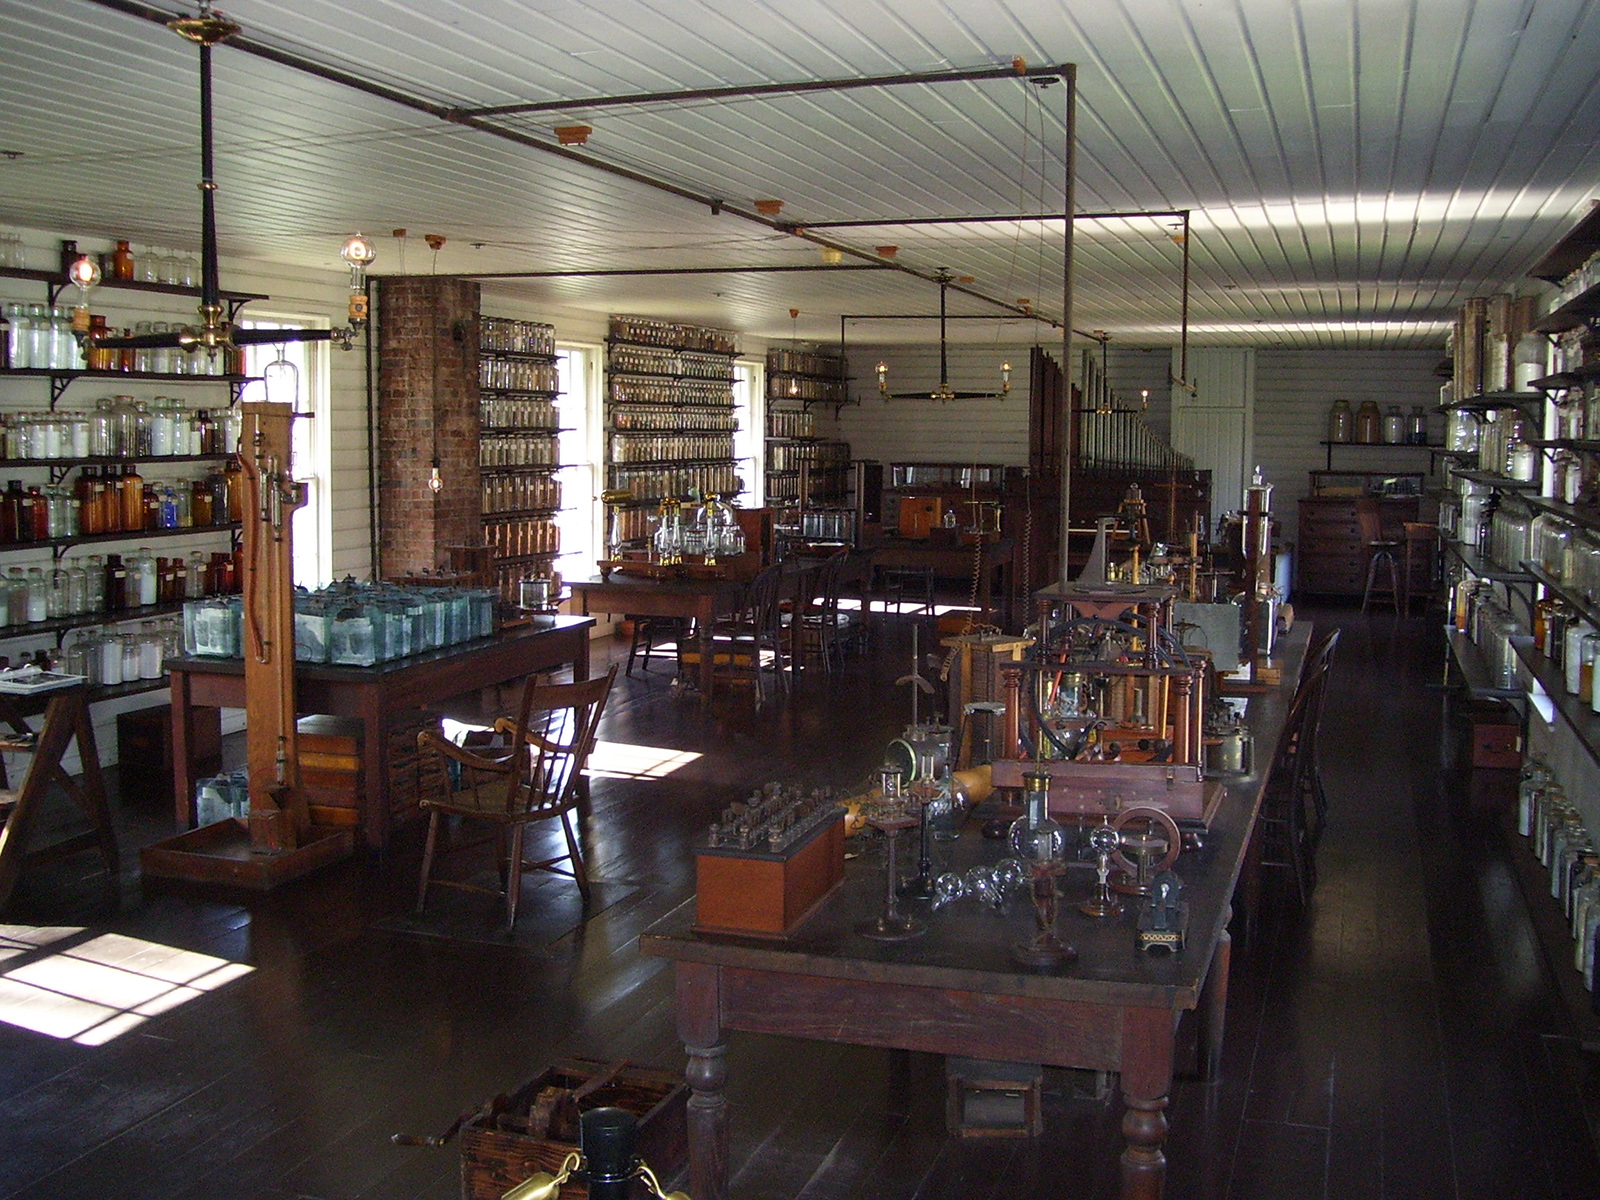 A laboratory with tables full of glass containers and shelves full of glass containers.